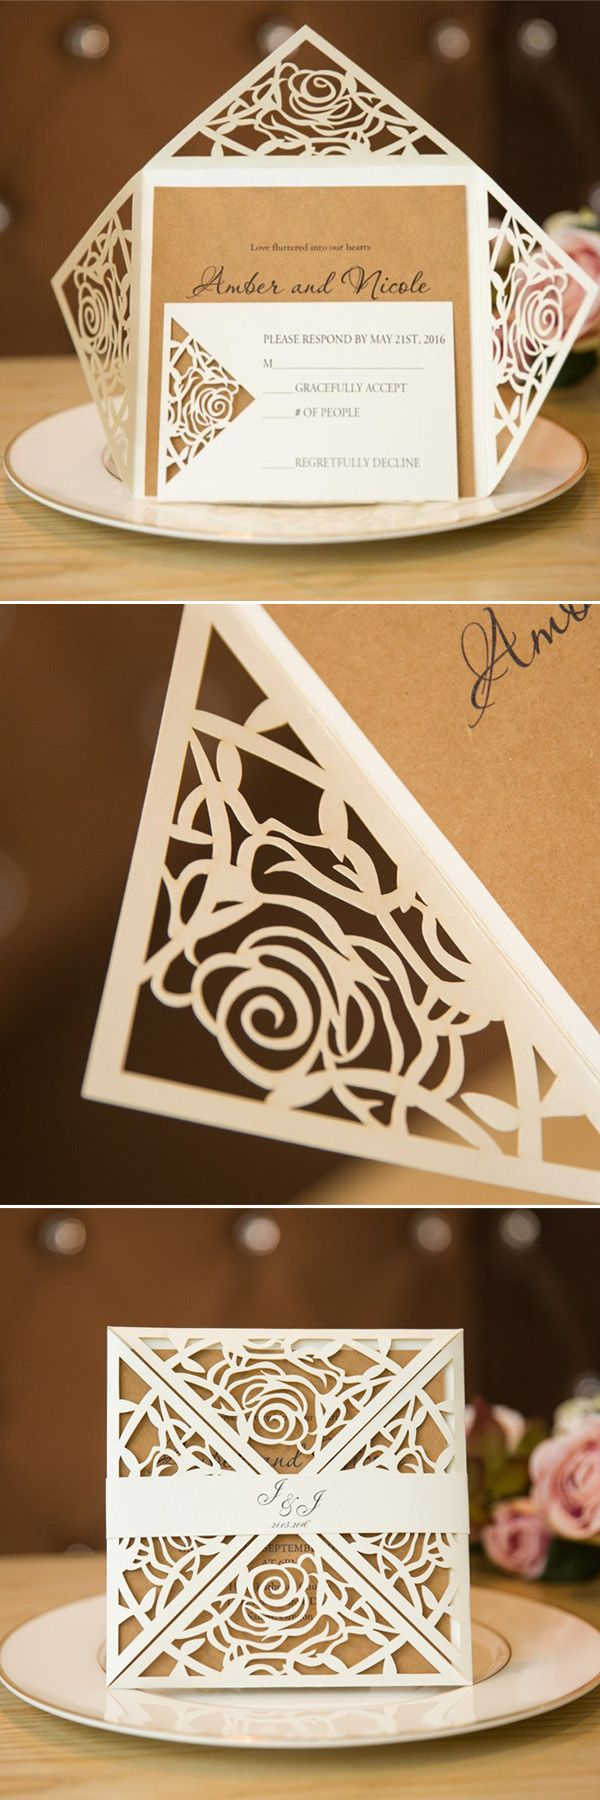 Laser Cut Wedding Invitations Diy Inspirational Laser Cut Wedding Invitations Diy Lenq